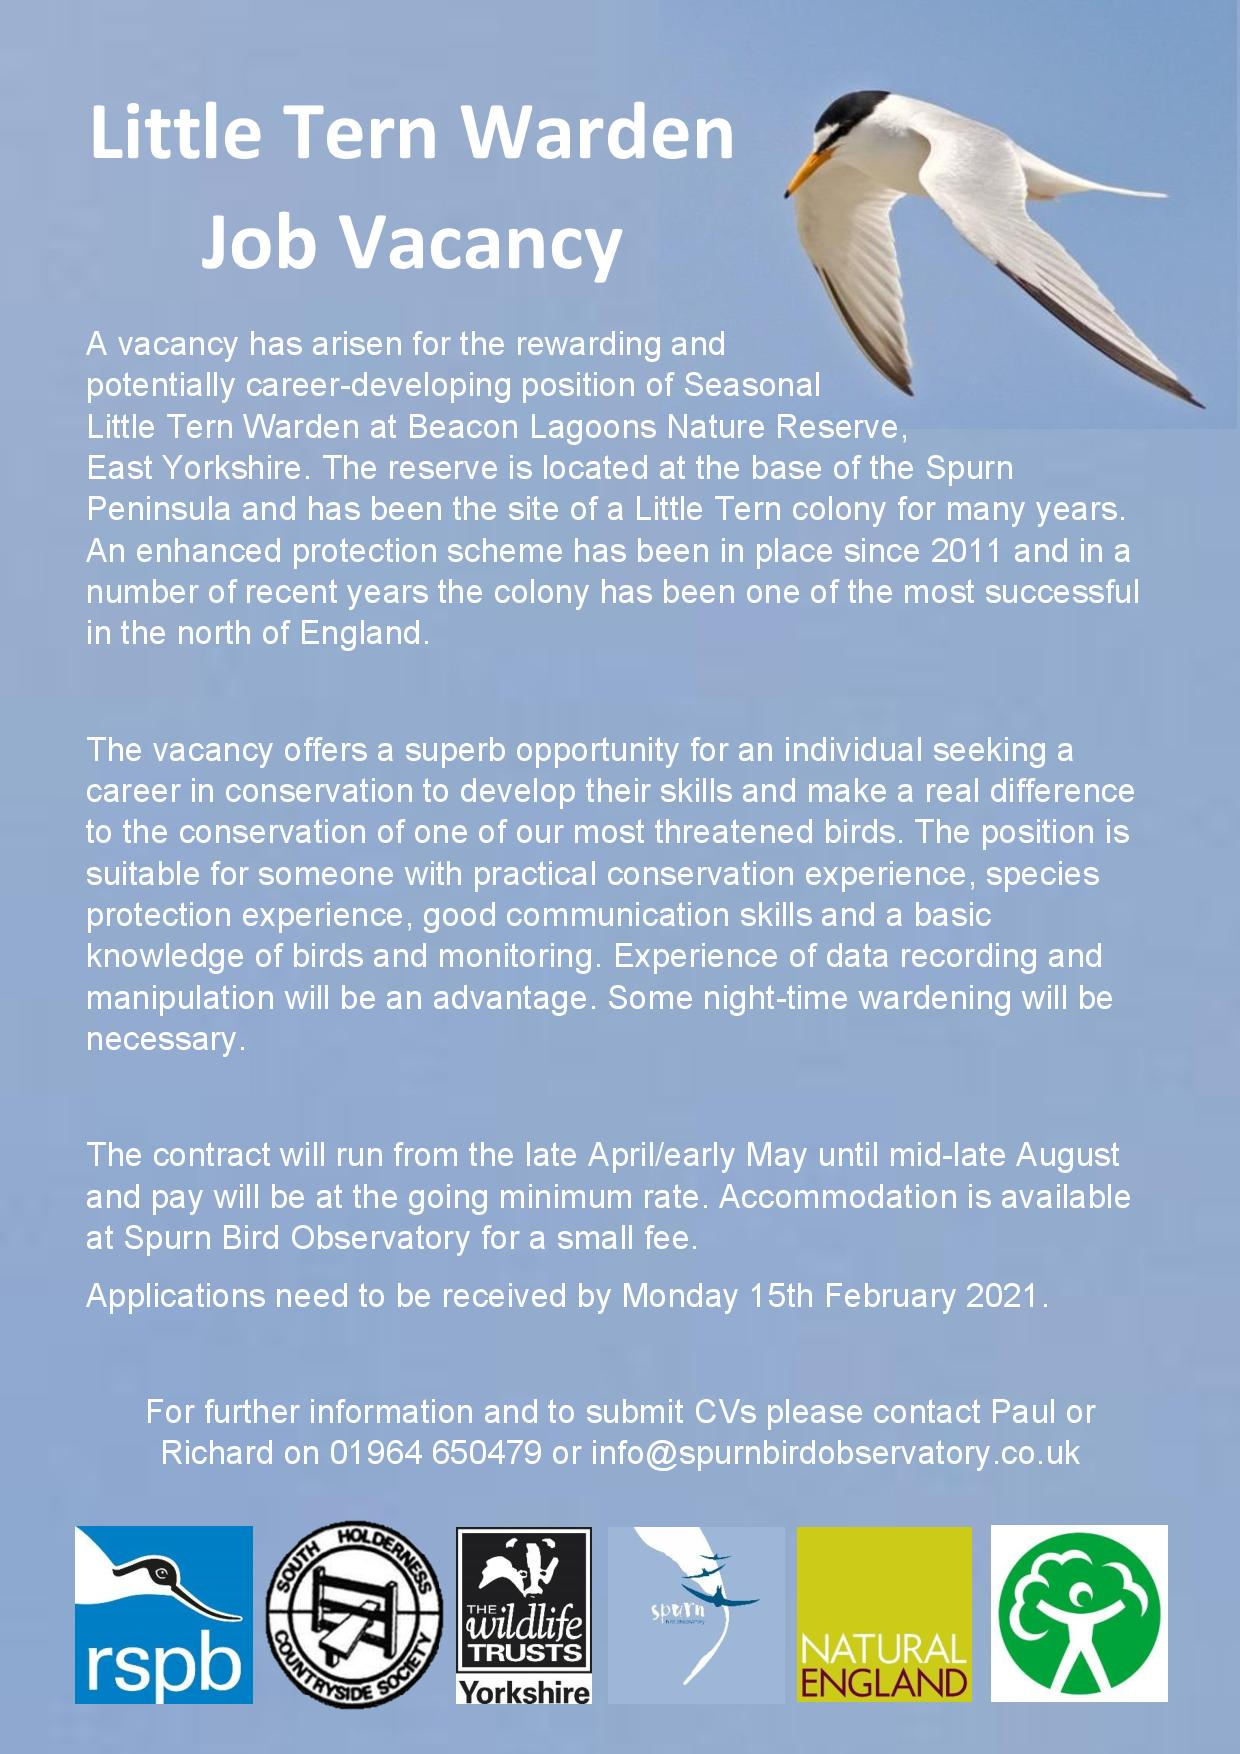 Little Tern Warden Job Vacancy